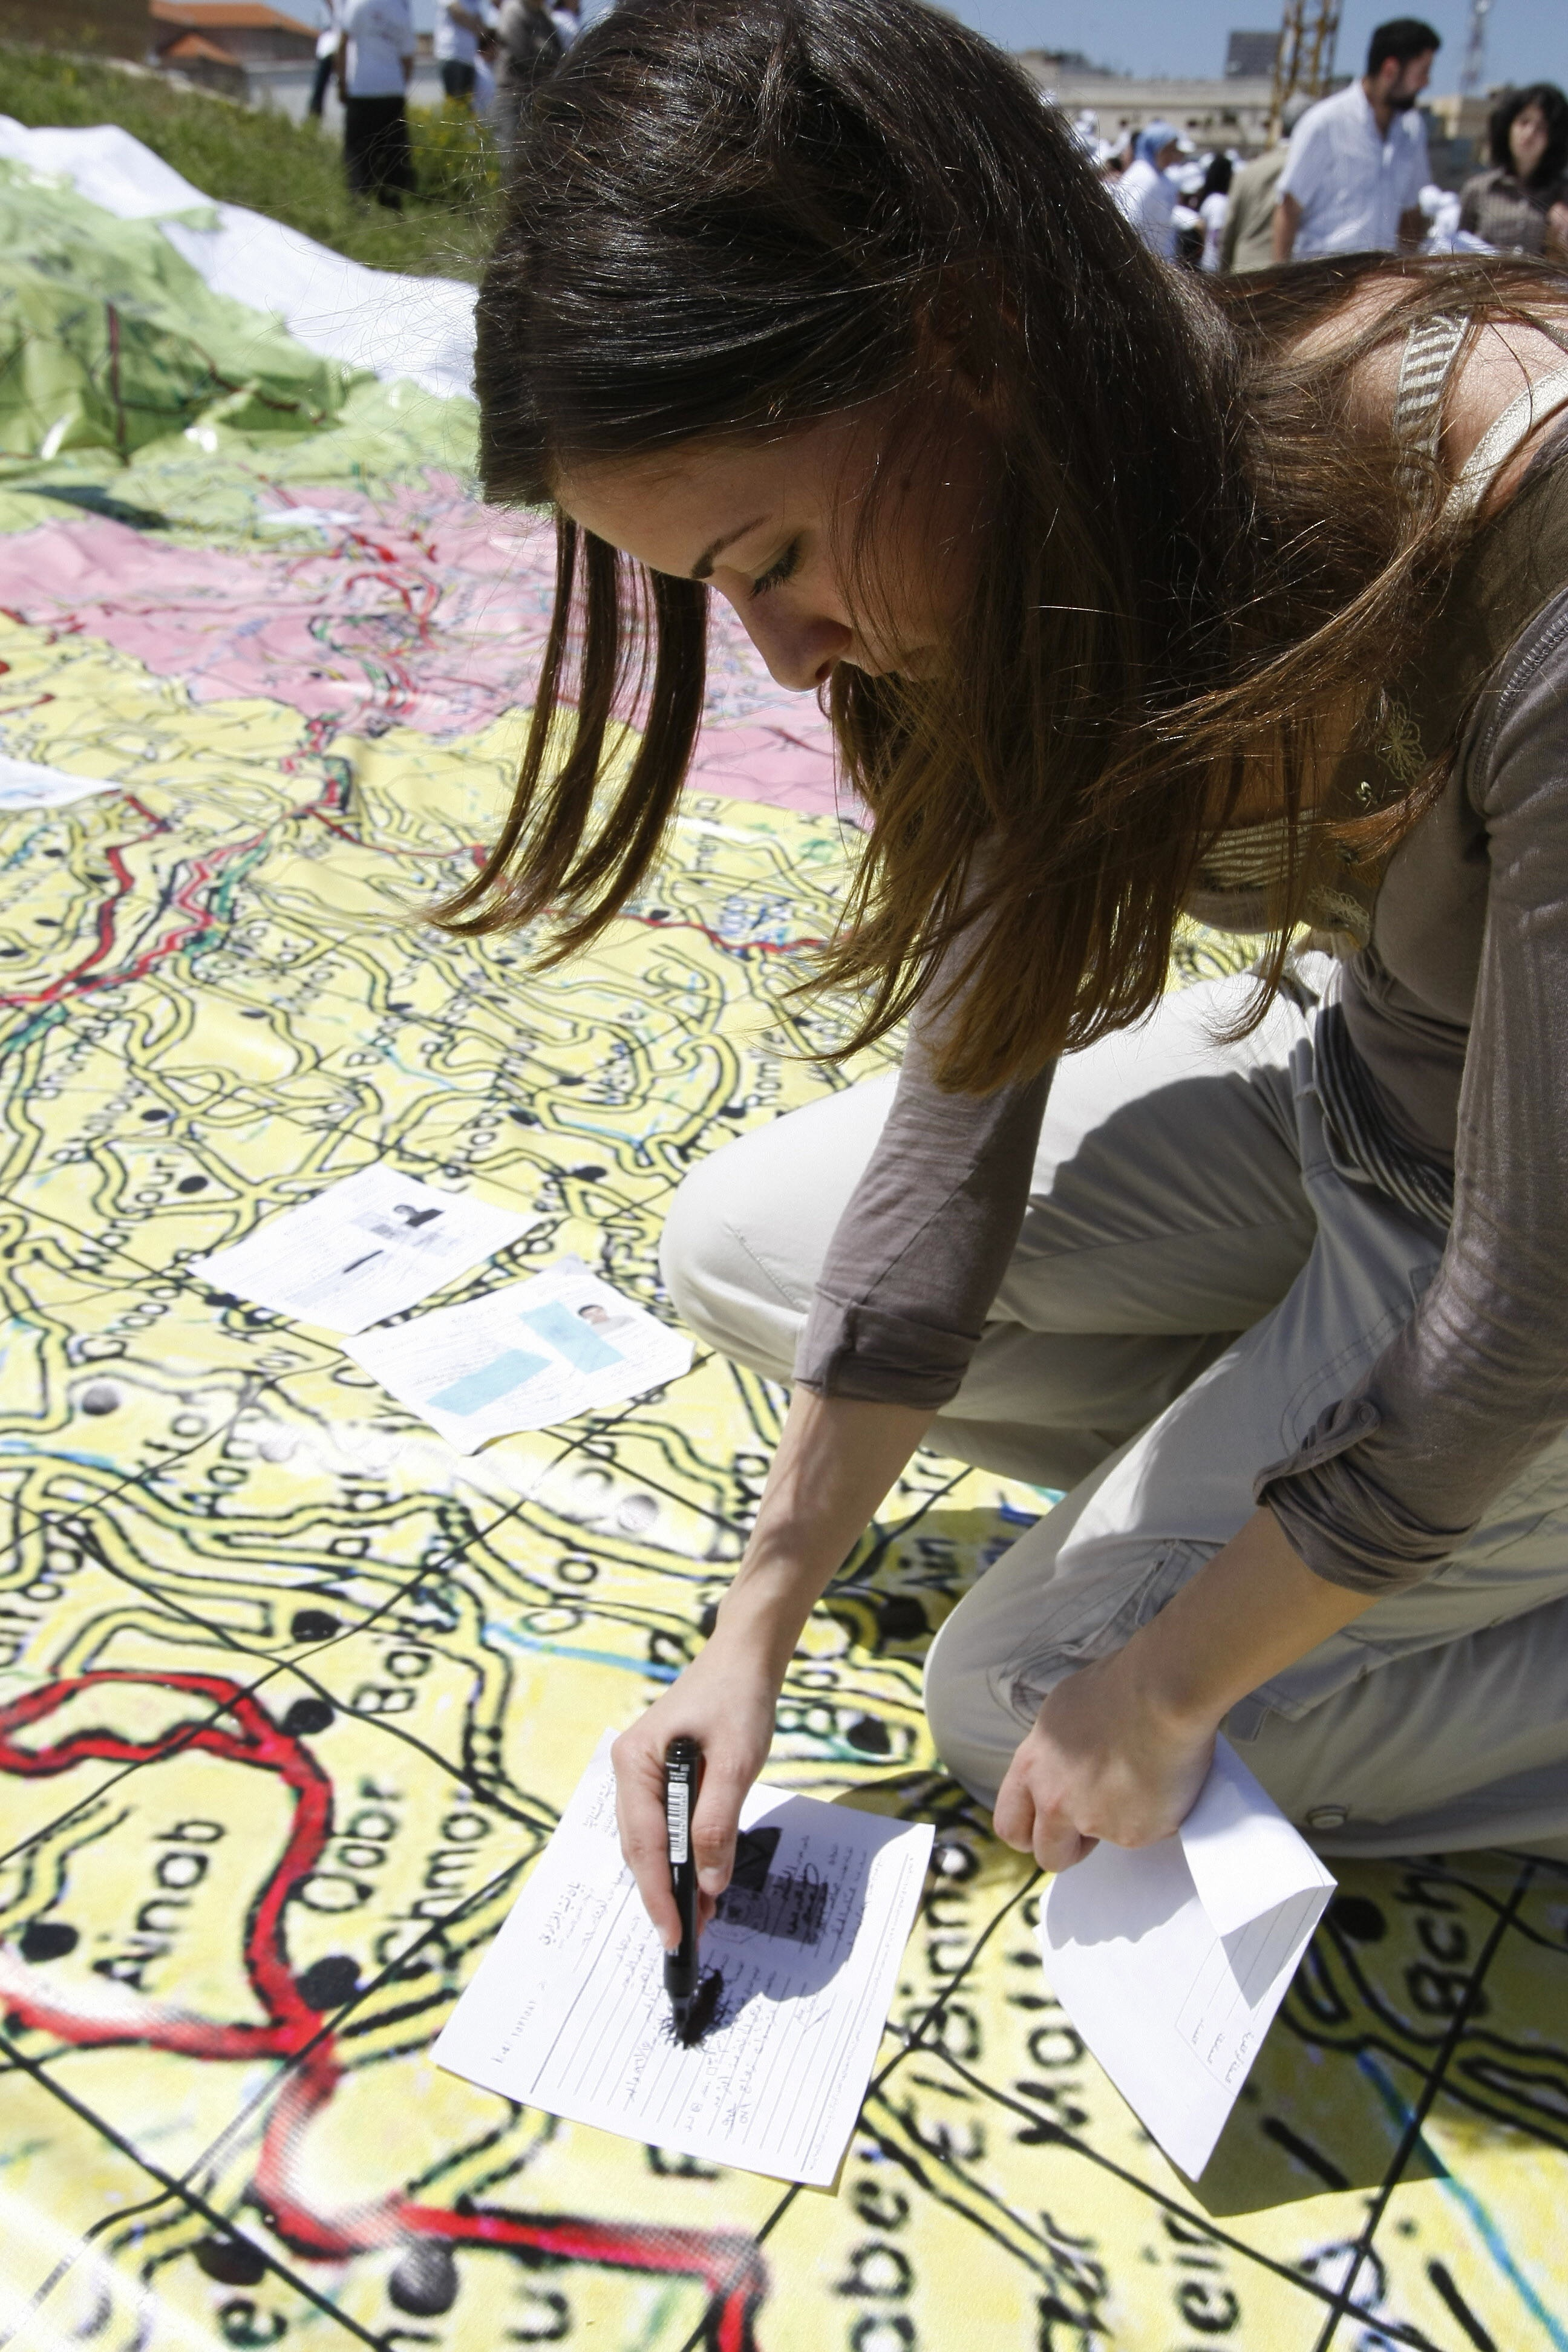 RAMZI HAIDAR/AFP/Getty Images.A Lebanese woman crosses over the religion field on her civil registry record after placing it on the spot where her hometown is located on a large map during a gathering organised by civil society associations on the occasion of the 34th anniversary of the outbreak of the Lebanese civil war (1975-1990), in downtown Beirut on April 13, 2009. Lebanese Interior Minister Ziad Baroud issued a memorandum in February dispensing citizens from revealing their religious affiliation on civil registry records. Rights groups have been pushing for such a measure since the end of Lebanon's 1975-1990 civil war when many were killed at roadblocks based on the religion noted on their ID cards.